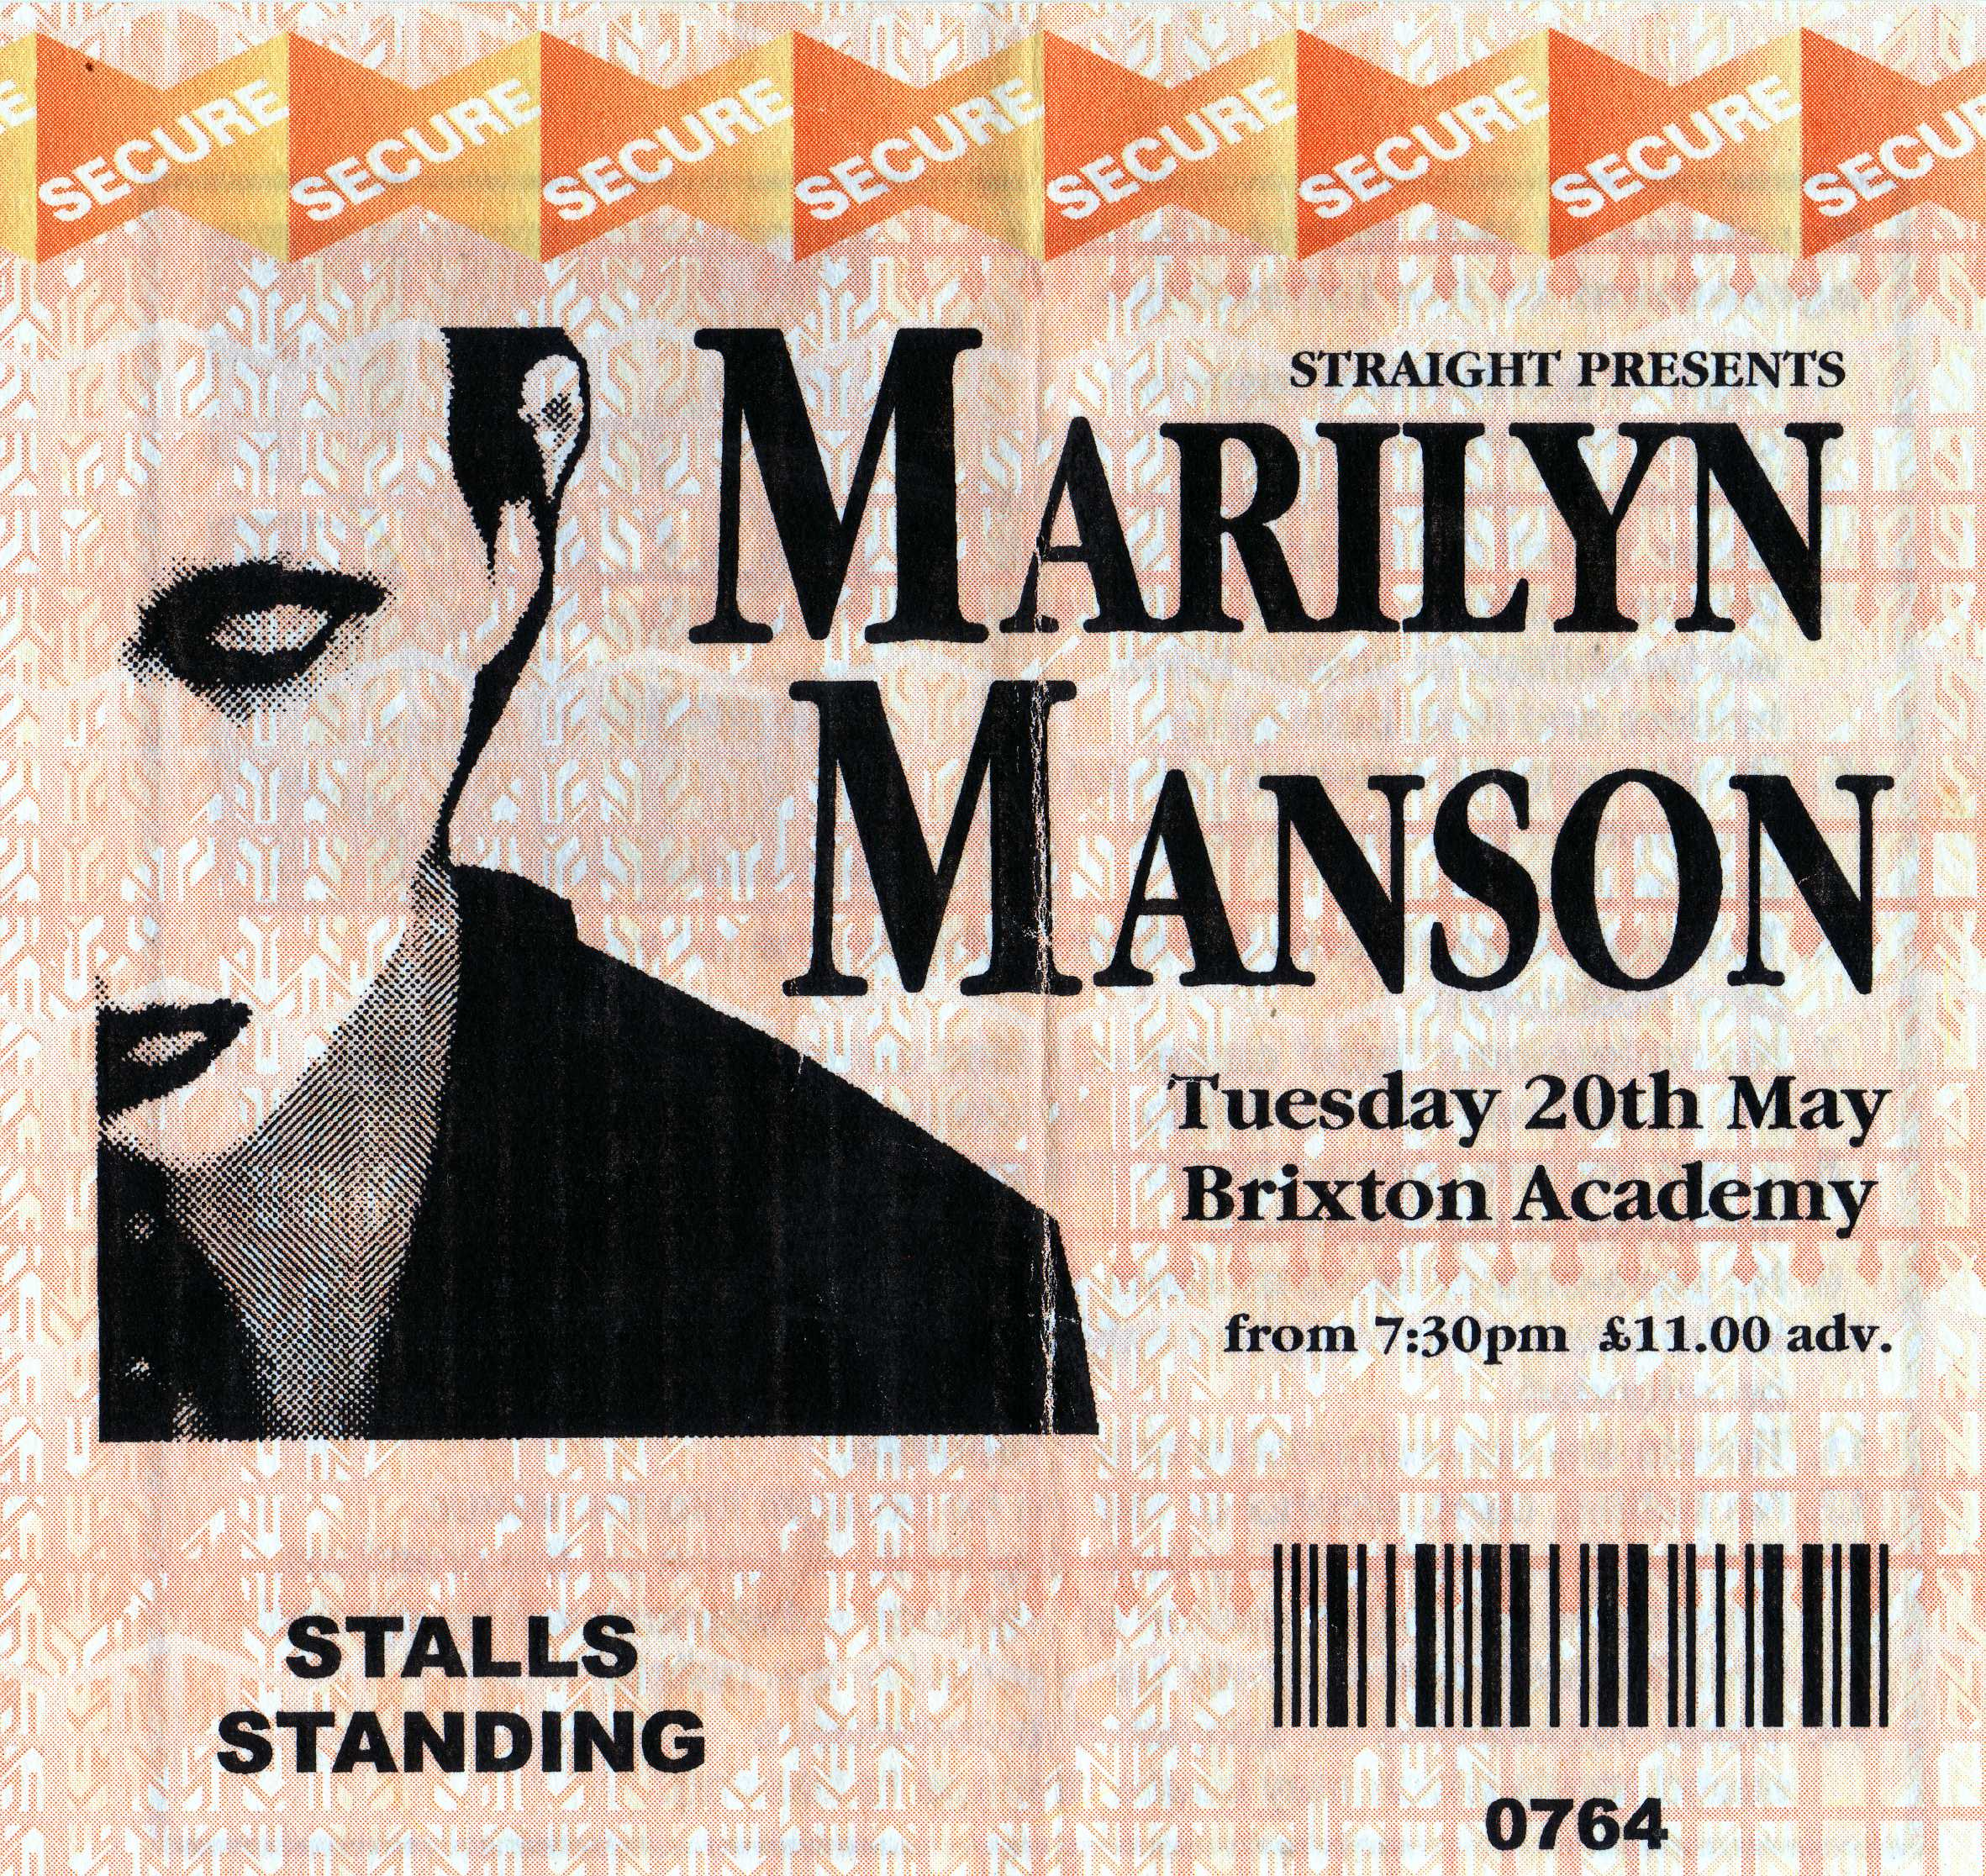 May 20, 1997 performance at Brixton Academy in London, United Kingdom.